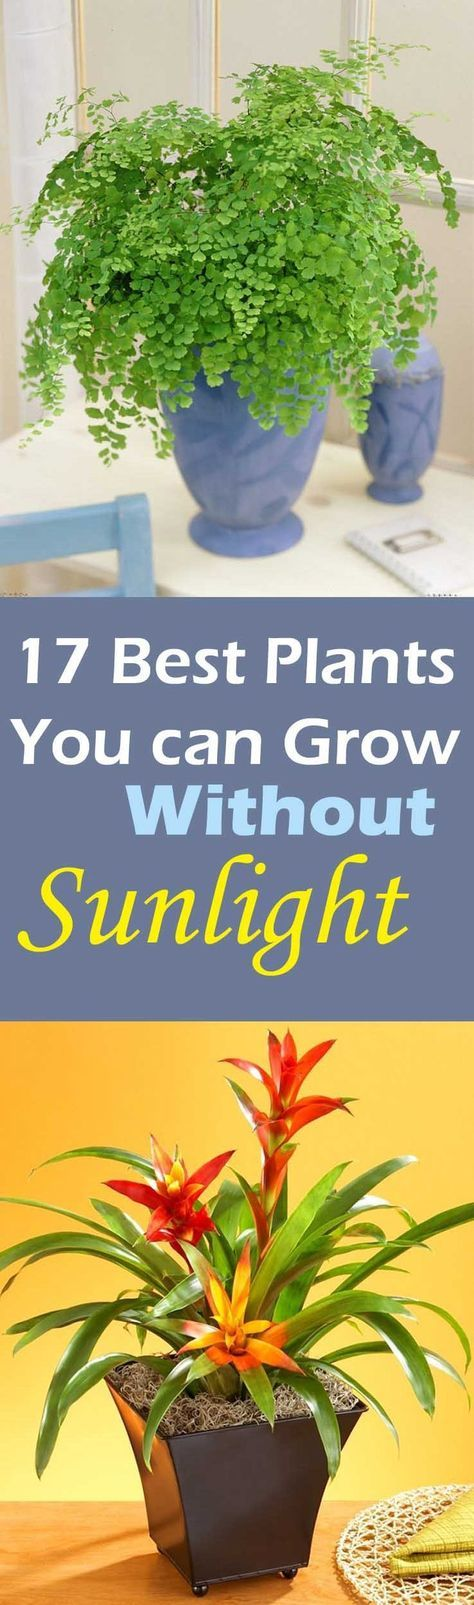 When you are looking for such plants choose that are known for their ability to grow in indirect sunlight. They are ideal shade-loving plants, naturally growing in indirect sun. These plants adapts well to the smaller amount of light and thrives normally. To make your searching easier we've listed 17 best plants to grow indoors.